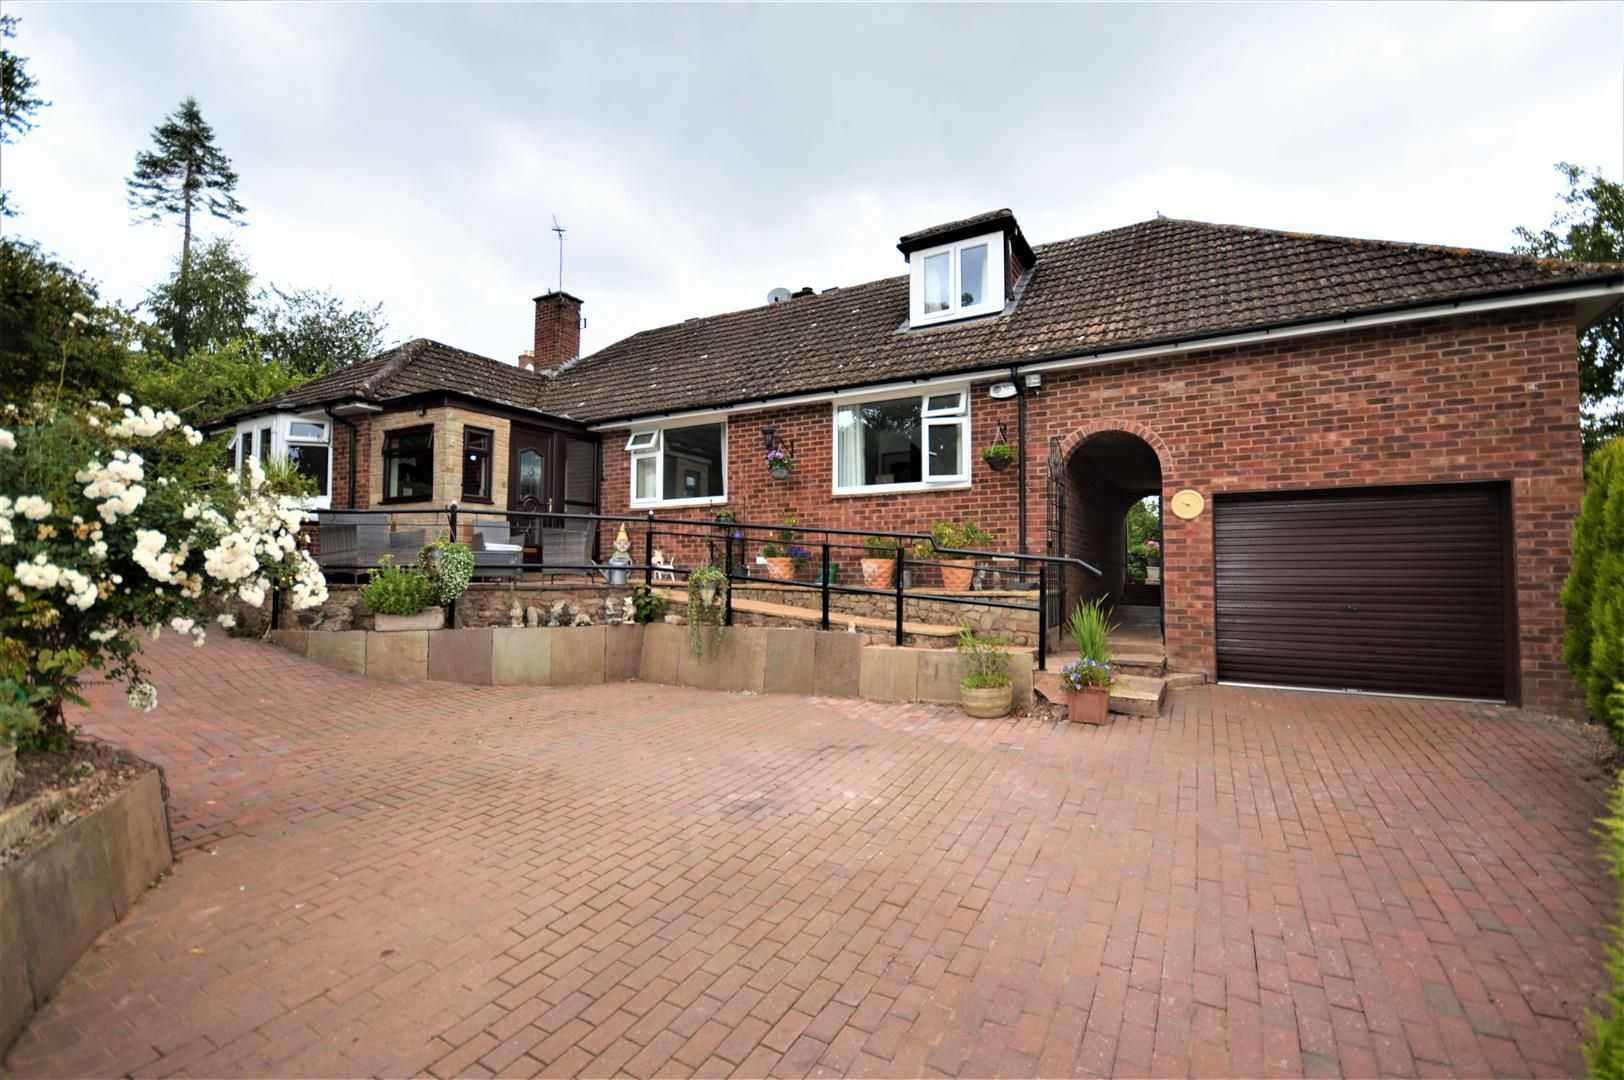 4 bed detached-bungalow for sale  - Property Image 12